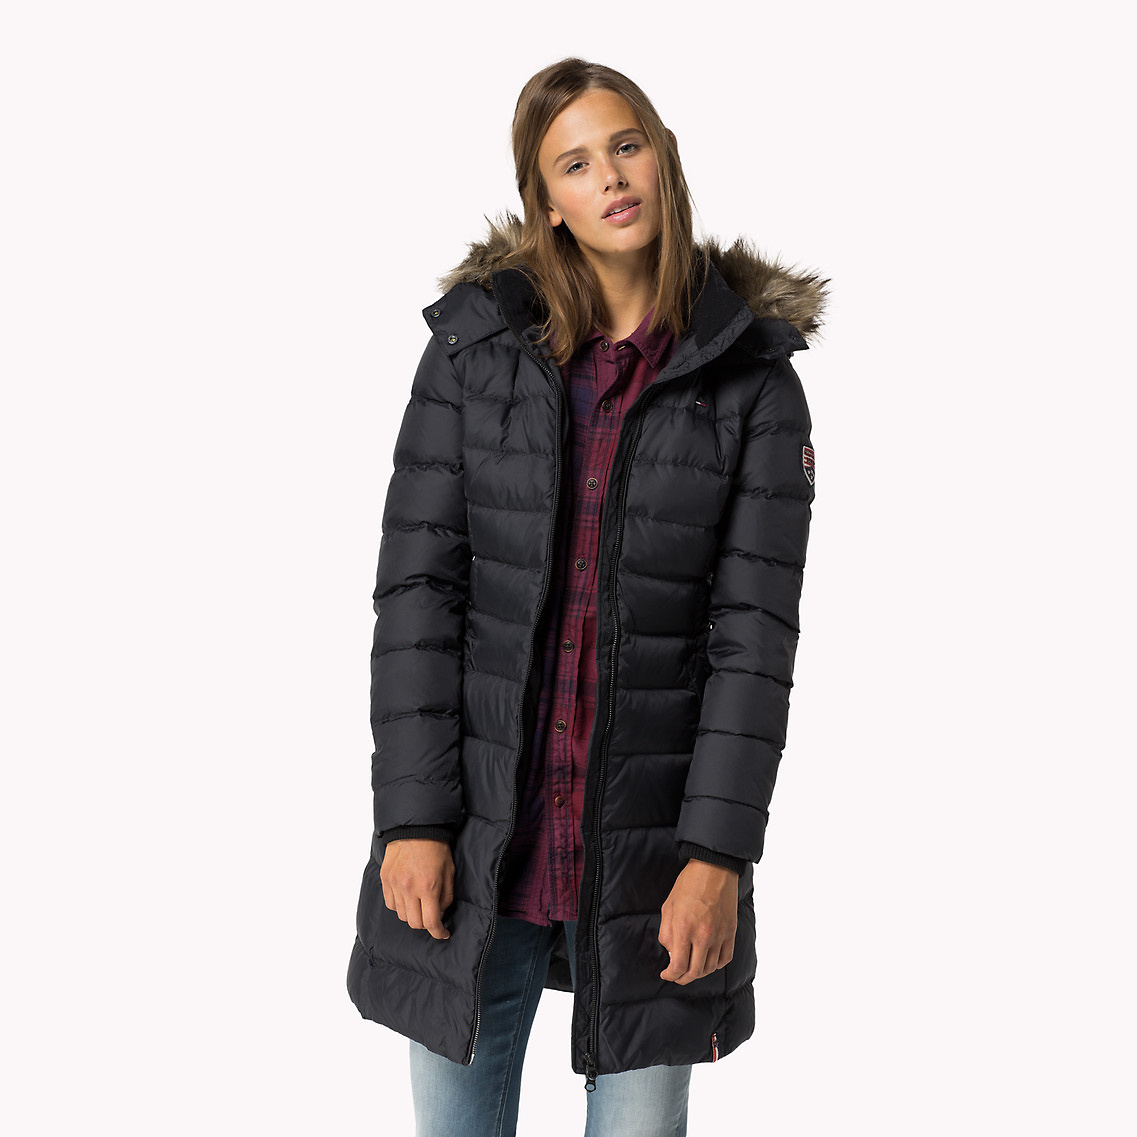 Down Filled Jacket Womens | Outdoor Jacket